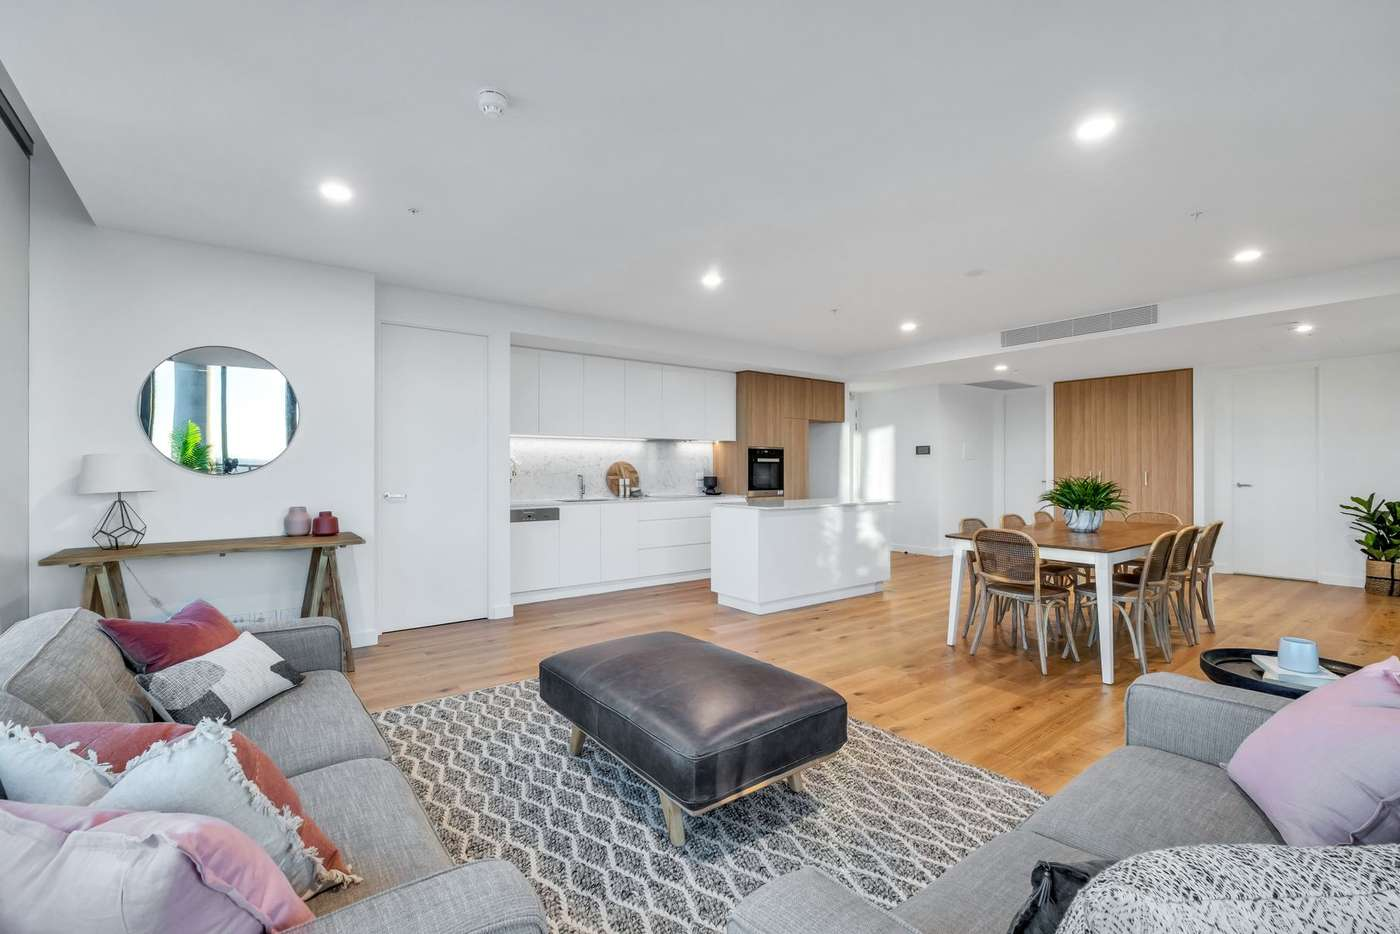 Fifth view of Homely apartment listing, 2506/19-27 Frome Street, Adelaide SA 5000